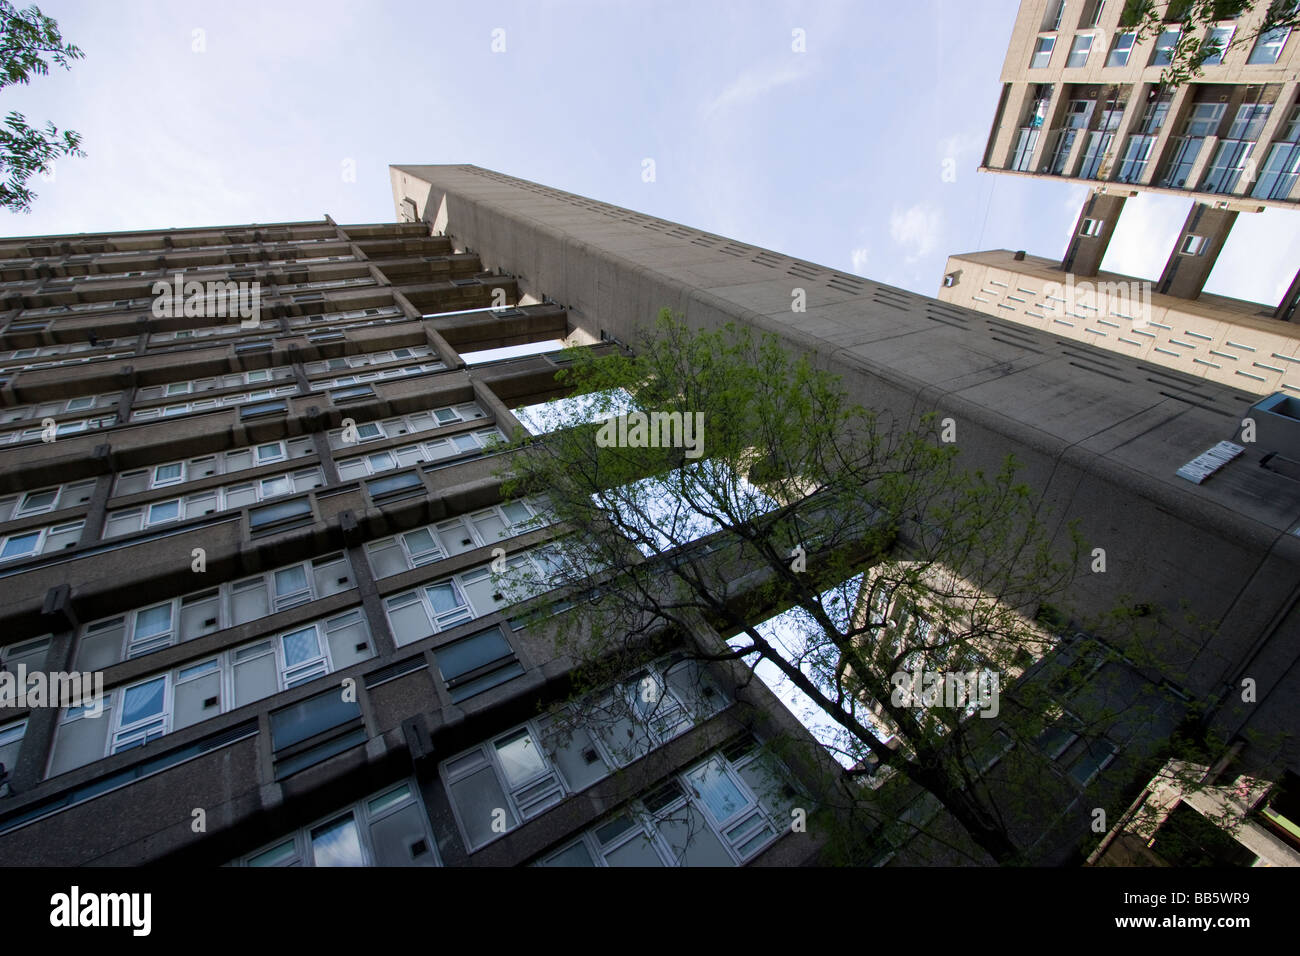 Balfron Tower is a 27 storey housing block in the Poplar district of the London Borough of Tower Hamlets - Stock Image